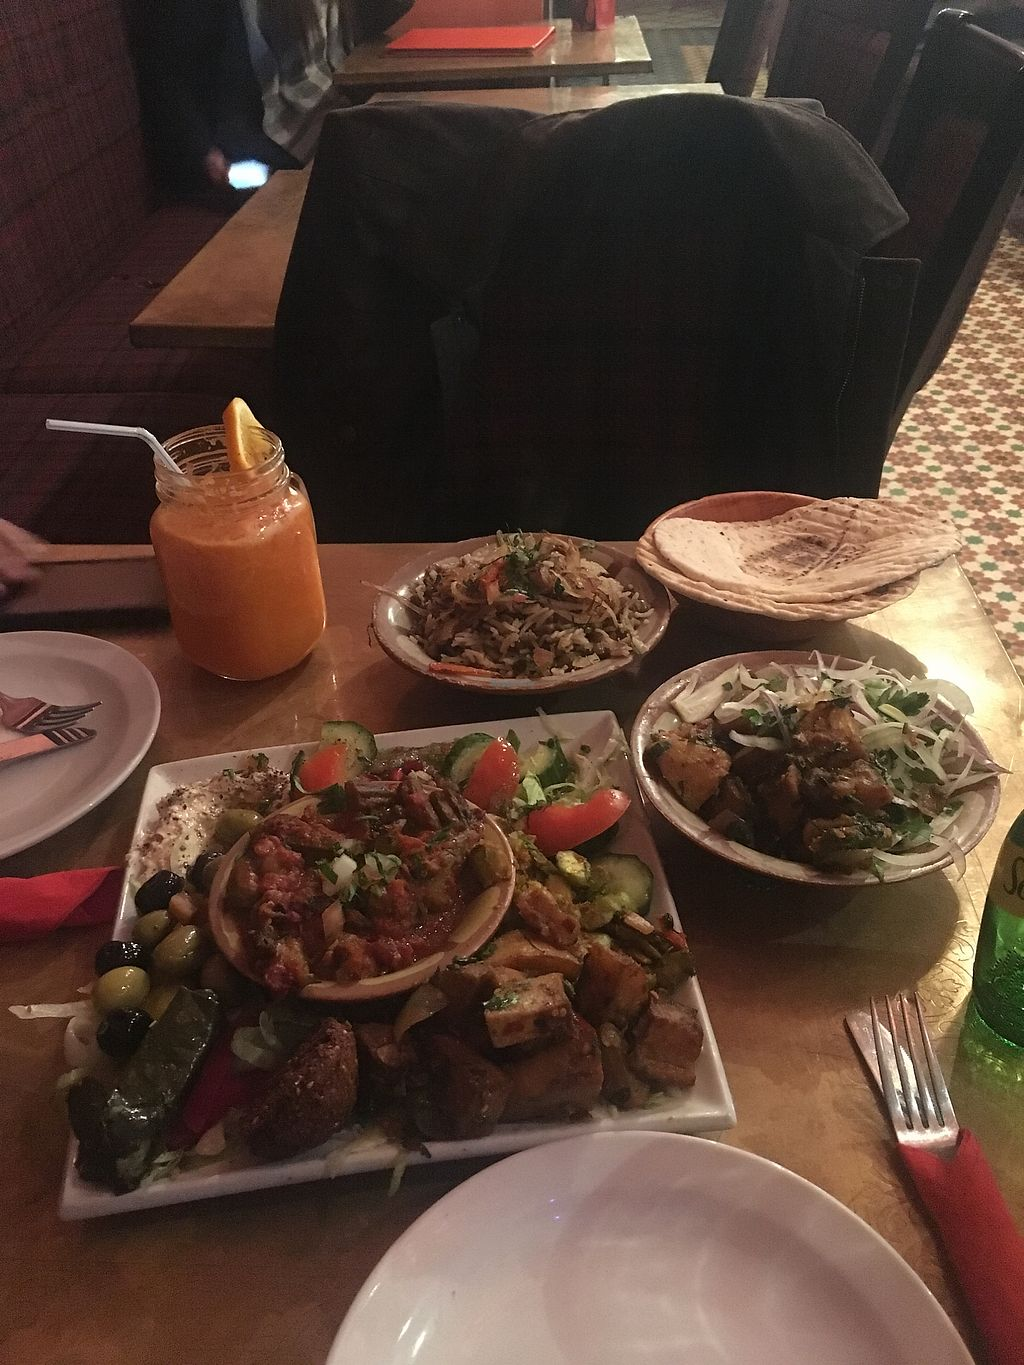 "Photo of Tarboush  by <a href=""/members/profile/BrandonLongley"">BrandonLongley</a> <br/>Vegan Mezze and other sides <br/> February 7, 2018  - <a href='/contact/abuse/image/111535/356136'>Report</a>"